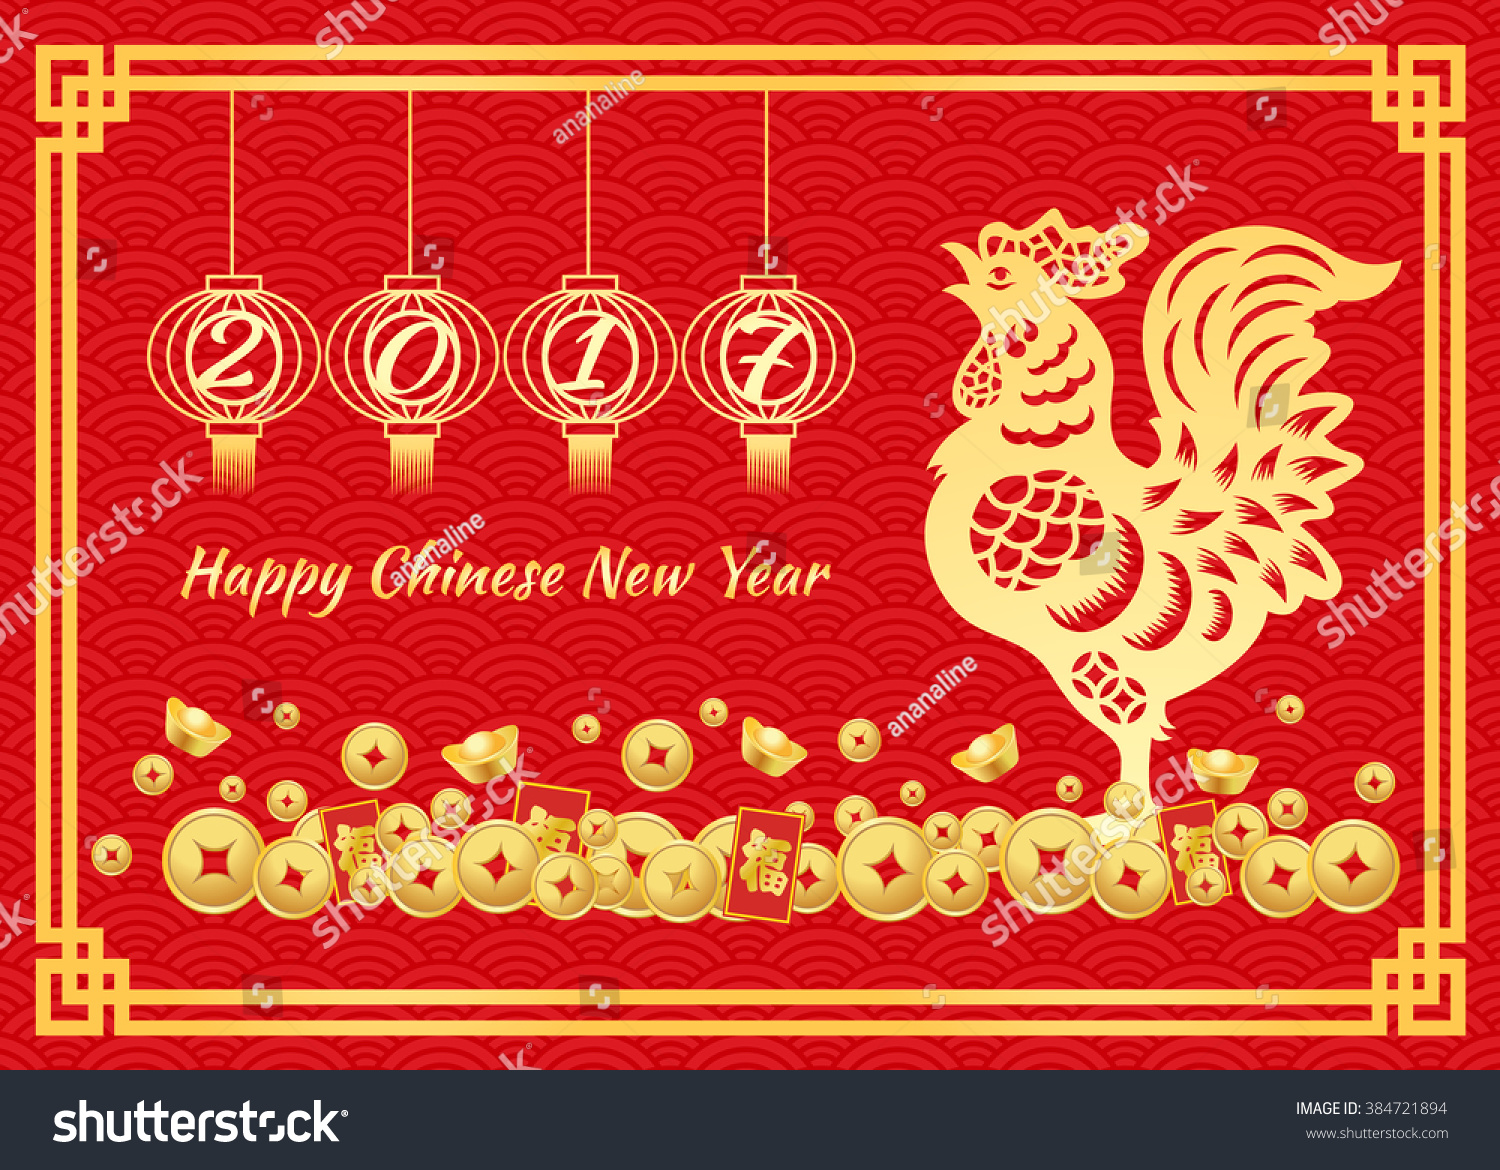 happy chinese new year 2017 card is number of year in lanterns gold chicken gold